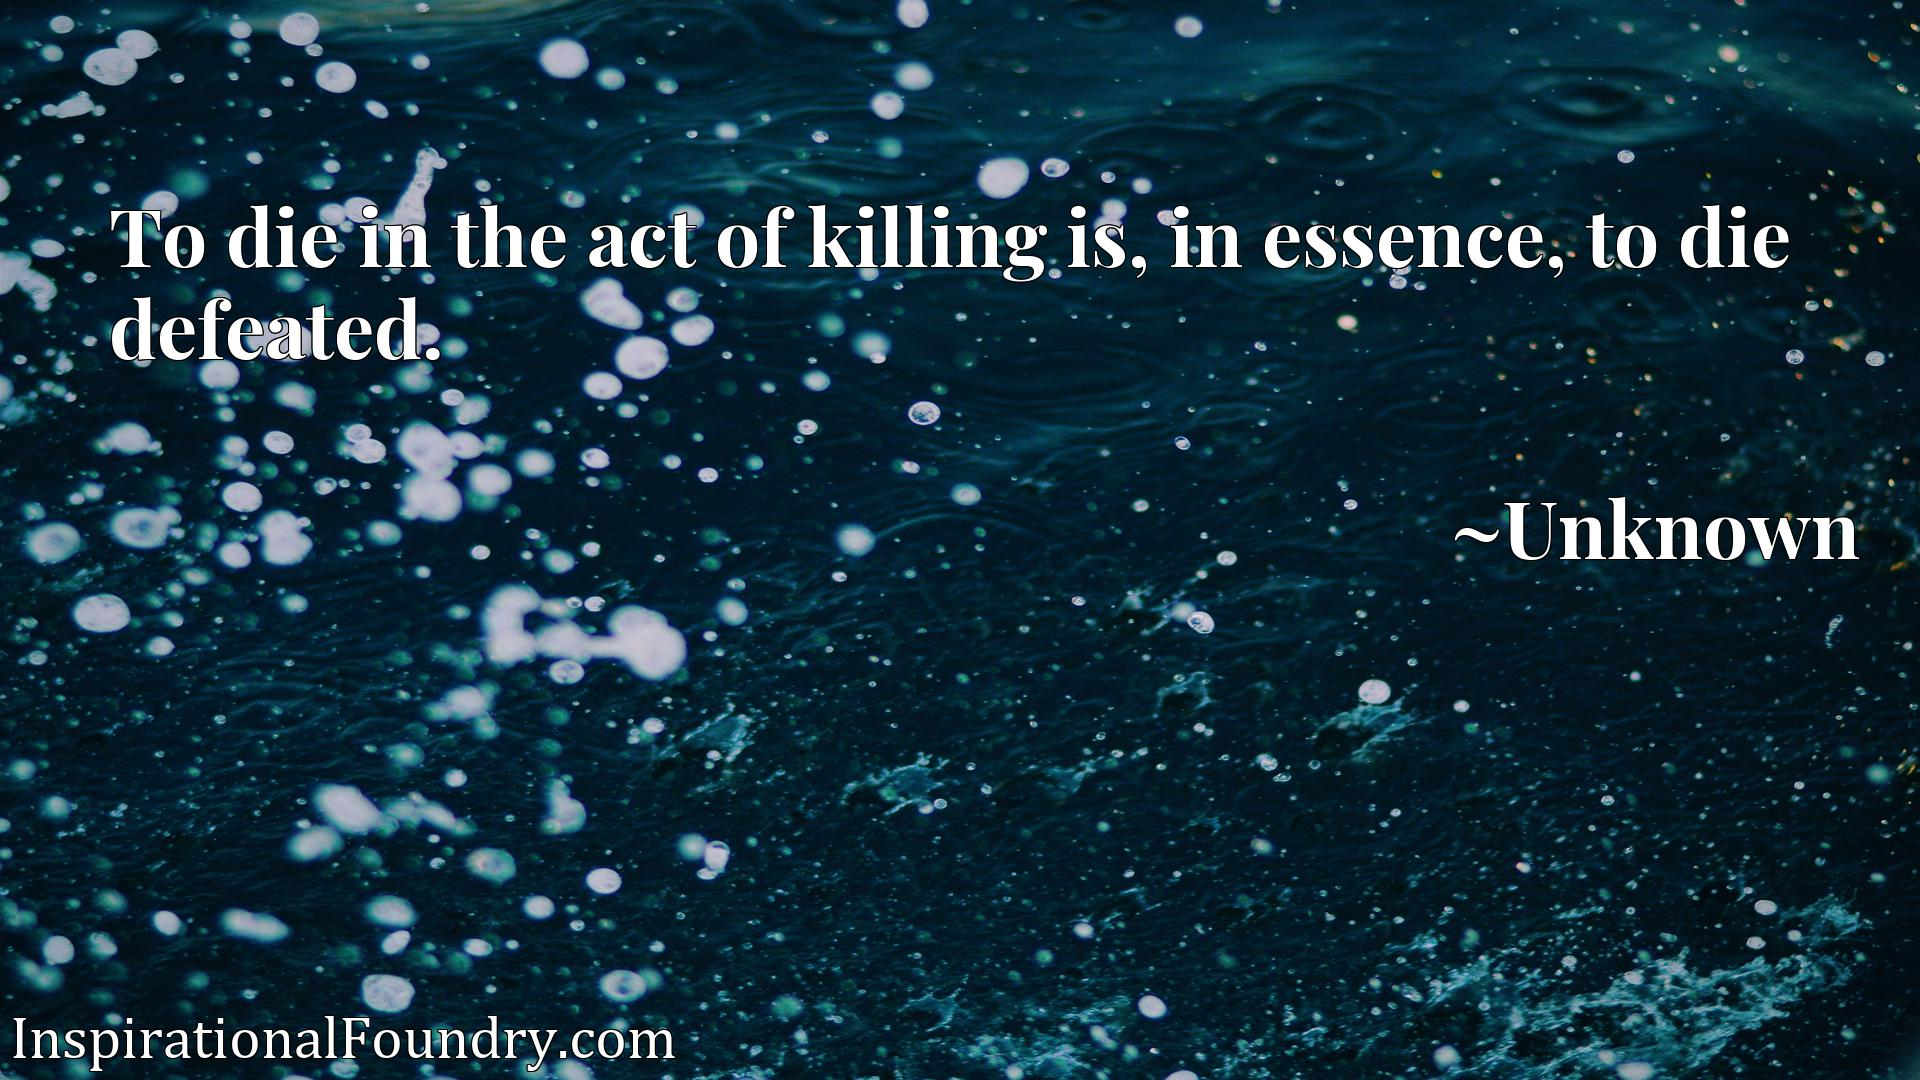 To die in the act of killing is, in essence, to die defeated.